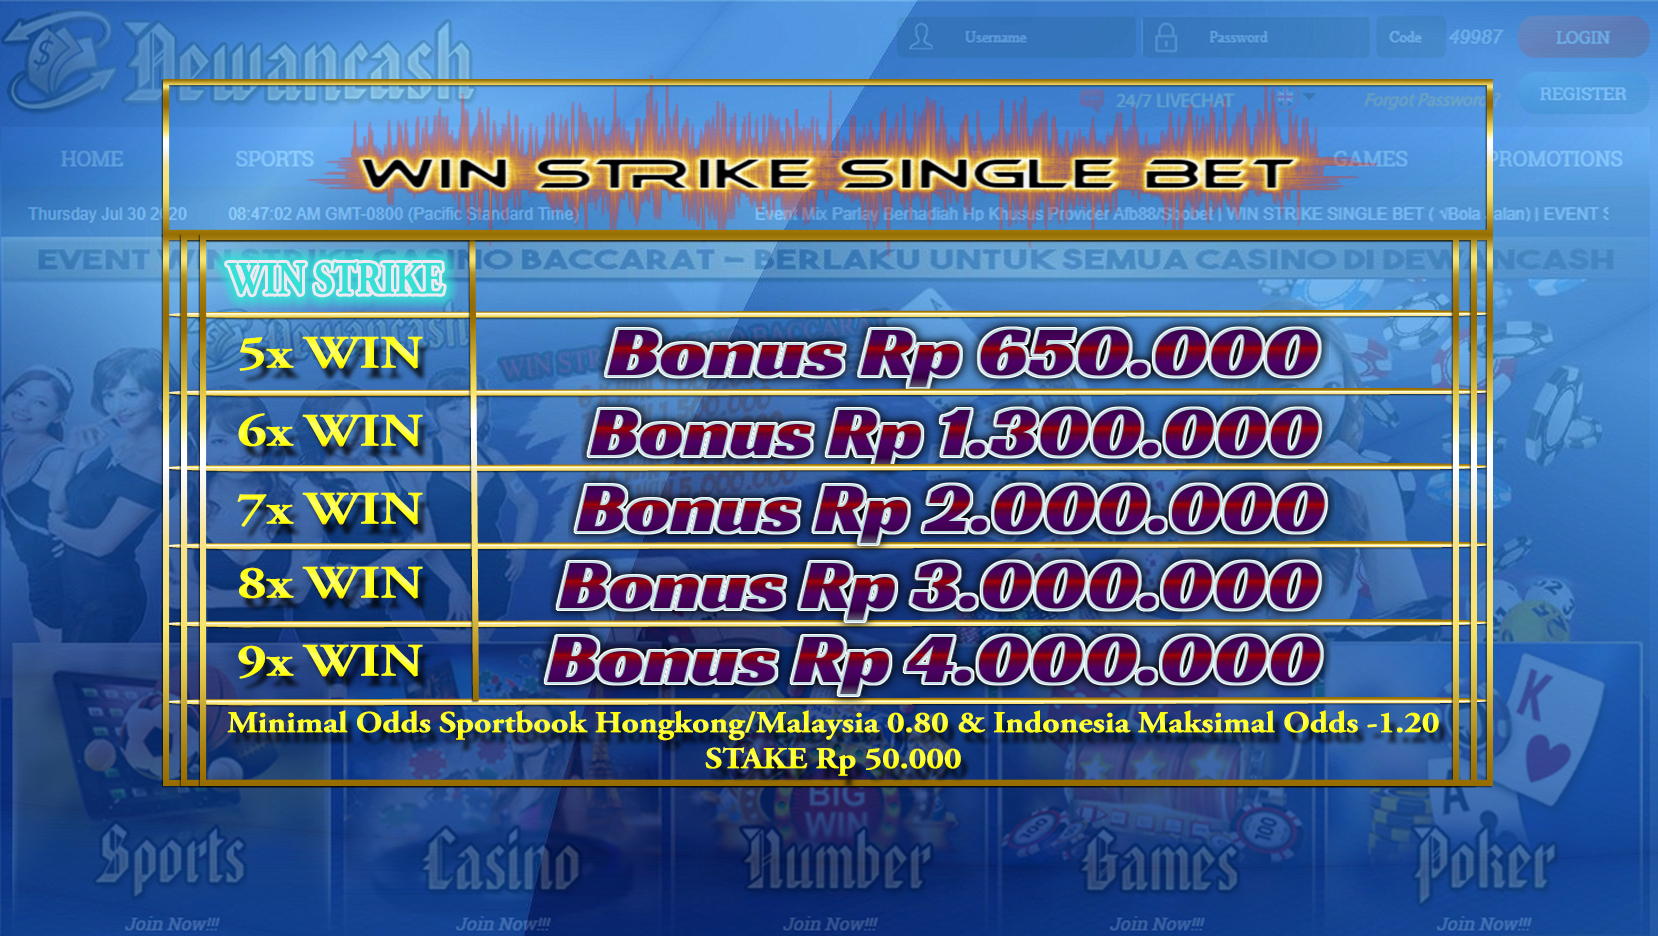 Event win streak single bet sportbook